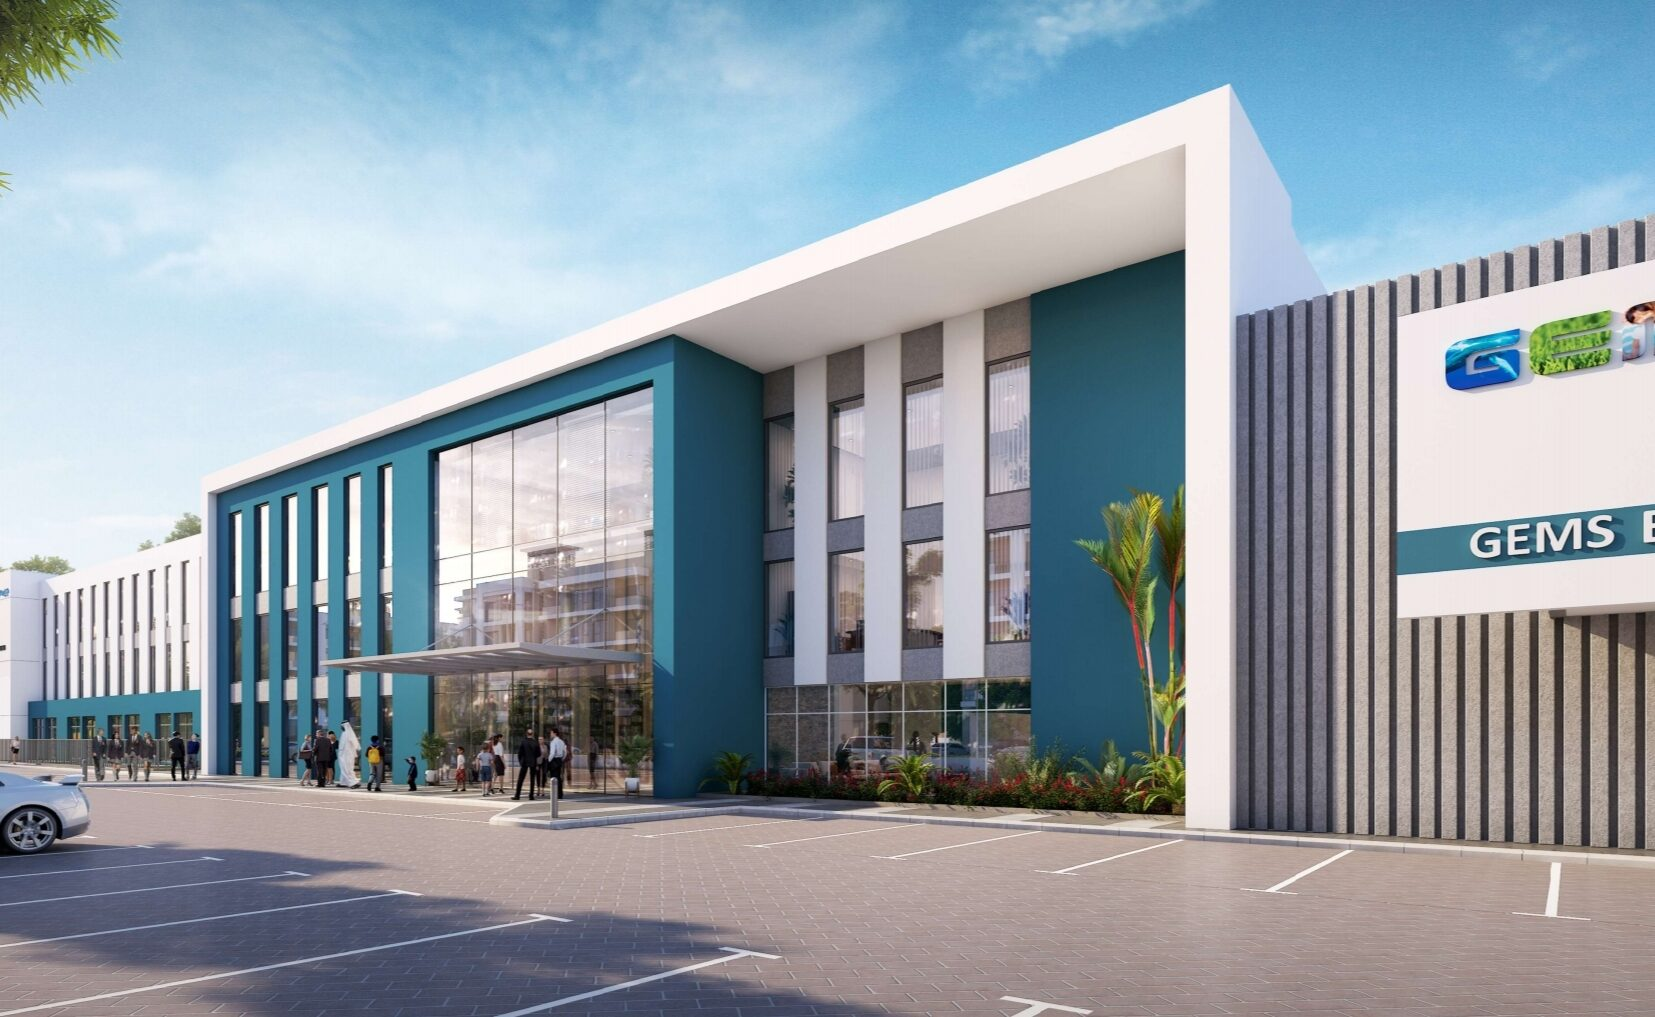 GEMS Education Expands in Egypt Establishing its First Purpose-Built School in Cairo